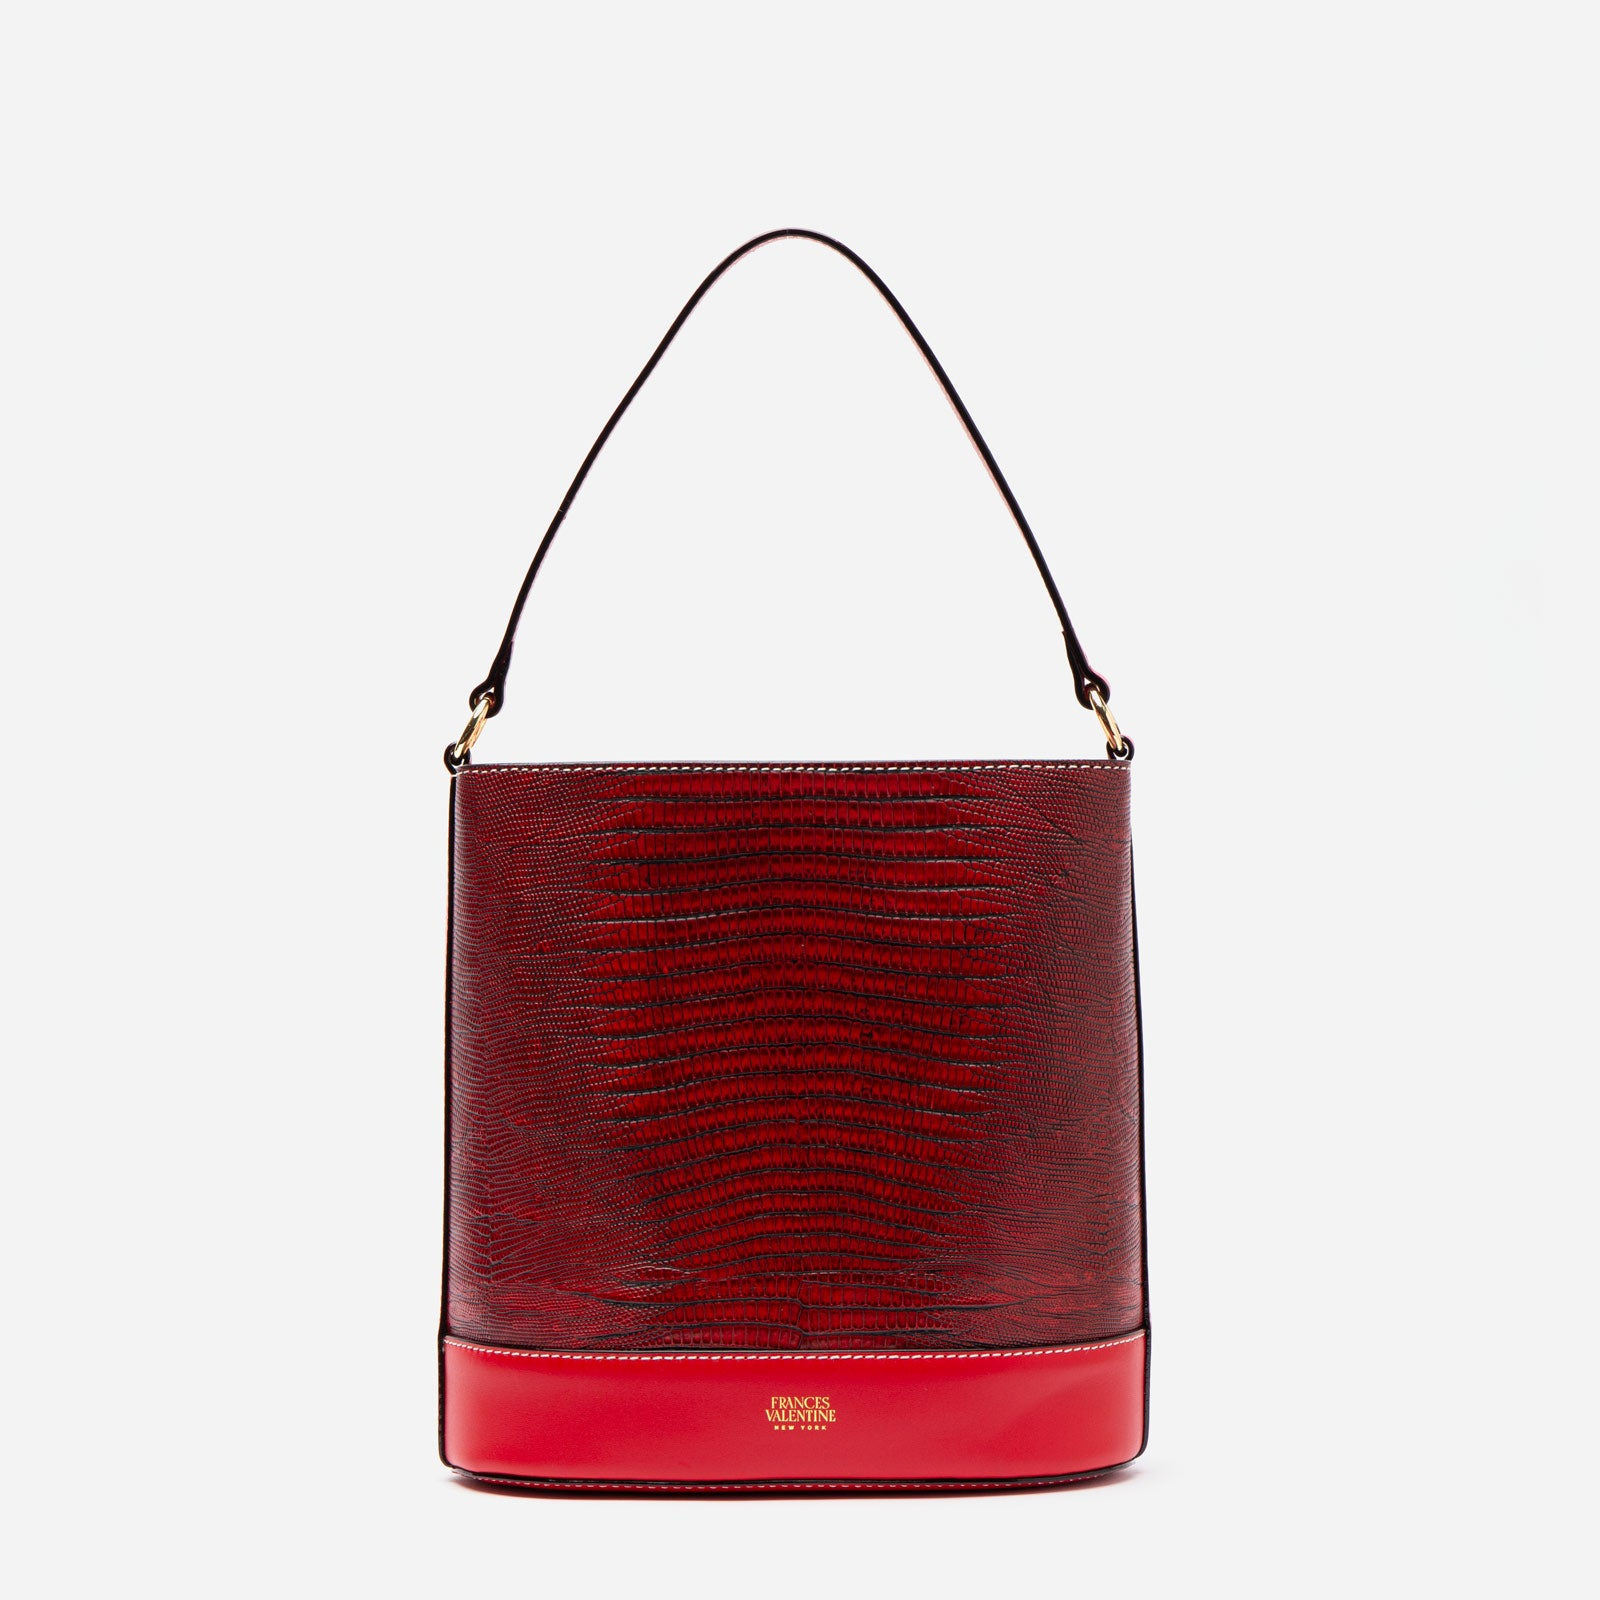 Stella Slim Bucket Lizard Embossed Leather Red - Frances Valentine